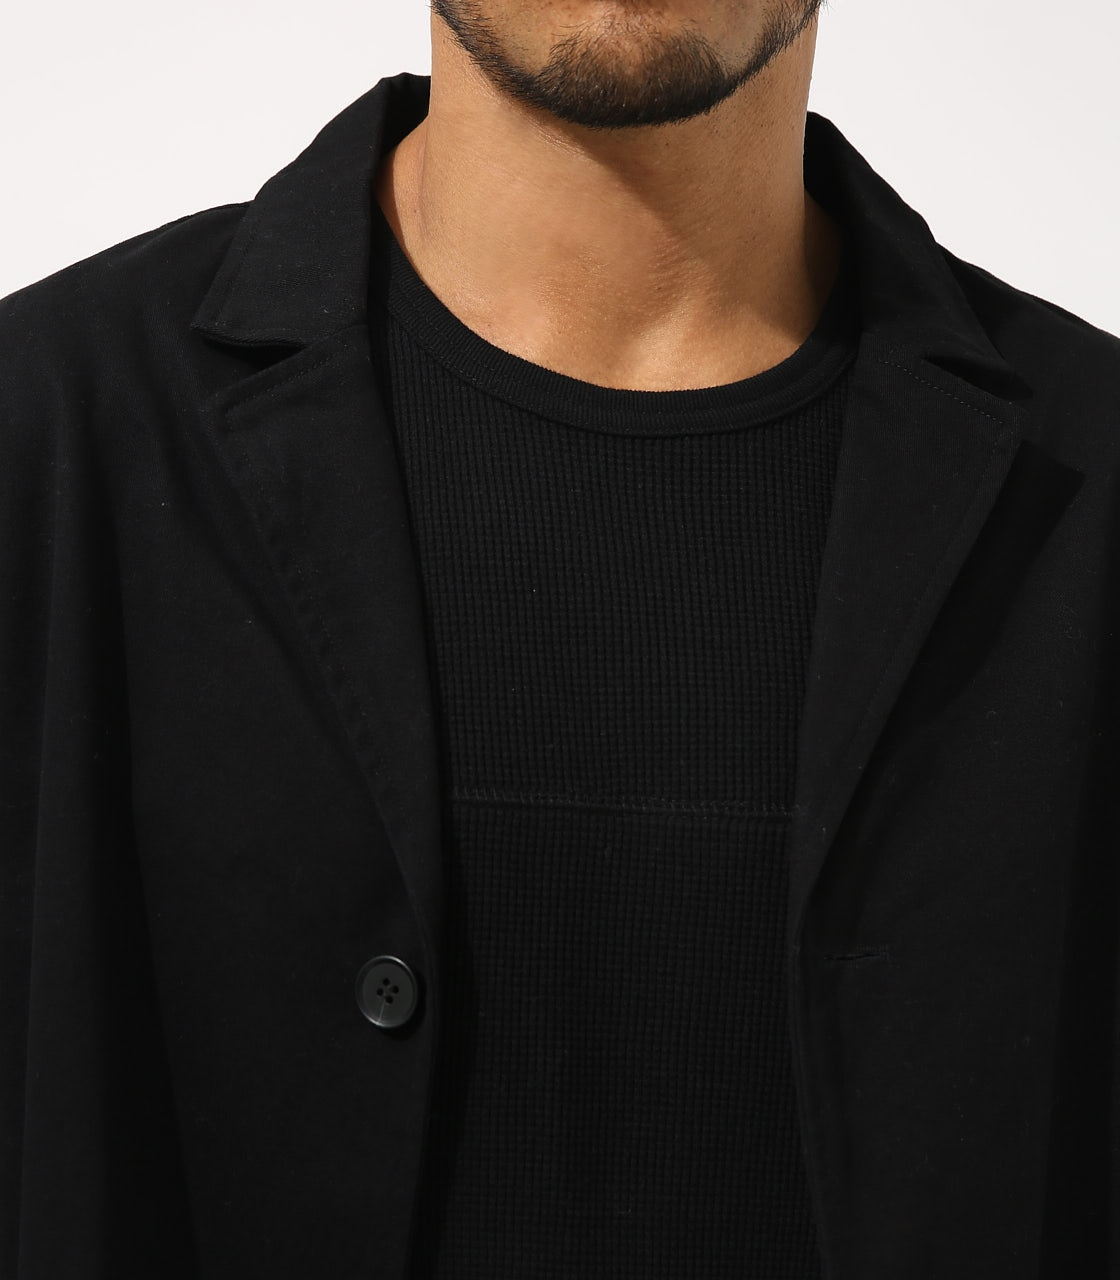 【AZUL BY MOUSSY】STANDARD SHOPCOAT 詳細画像 BLK 8